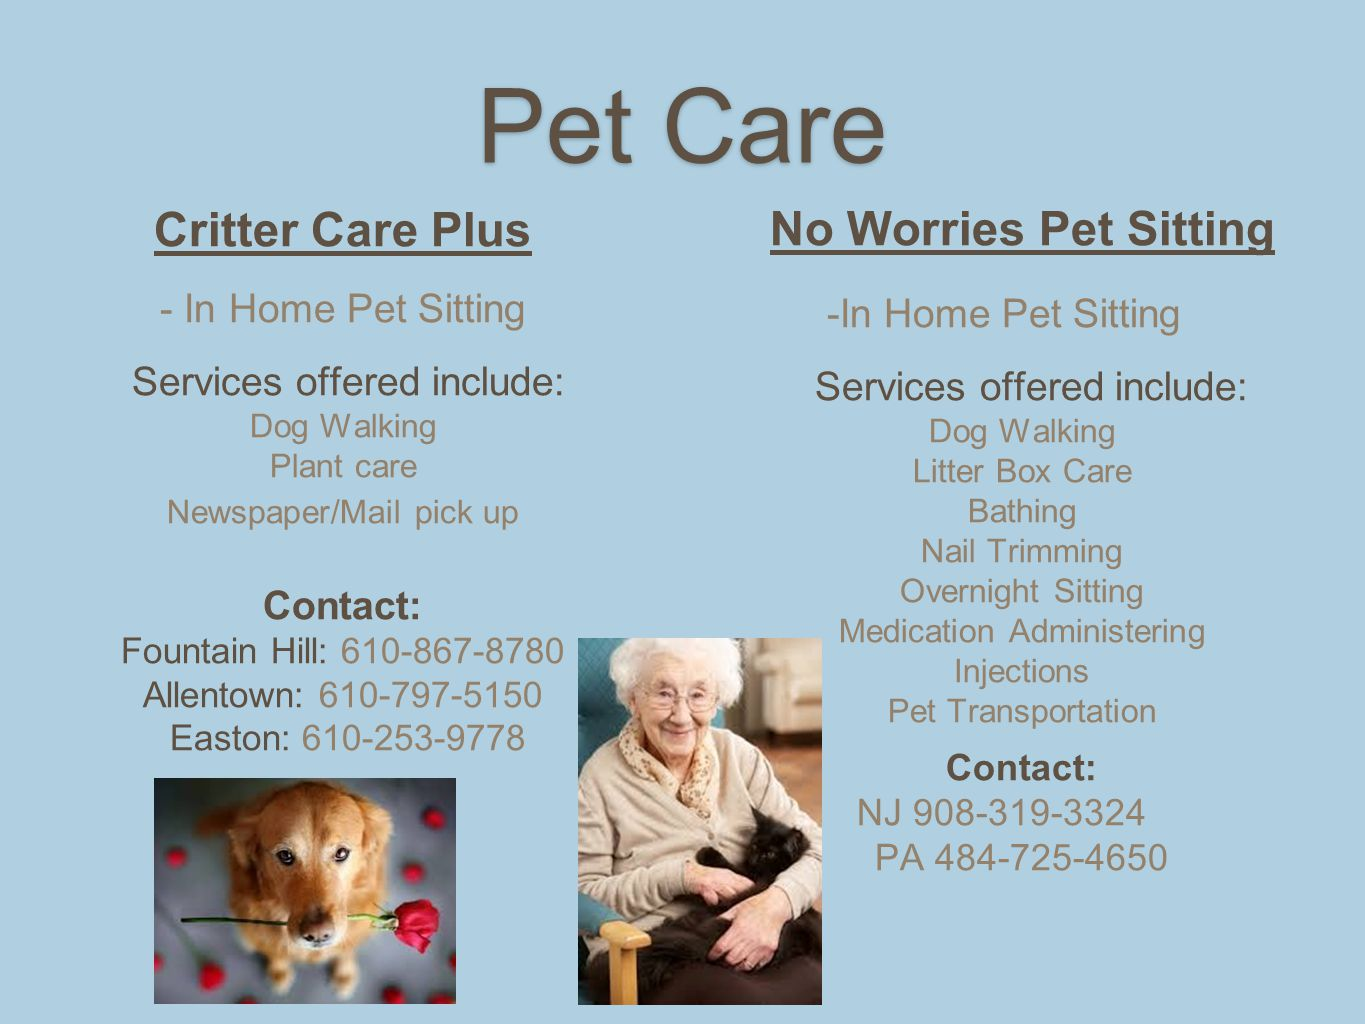 Pet Care Critter Care Plus - In Home Pet Sitting Services offered include: Dog Walking Plant care Newspaper/Mail pick up Contact: Fountain Hill: 610-867-8780 Allentown: 610-797-5150 Easton: 610-253-9778 No Worries Pet Sitting -In Home Pet Sitting Services offered include: Dog Walking Litter Box Care Bathing Nail Trimming Overnight Sitting Medication Administering Injections Pet Transportation Contact: NJ 908-319-3324 PA 484-725-4650